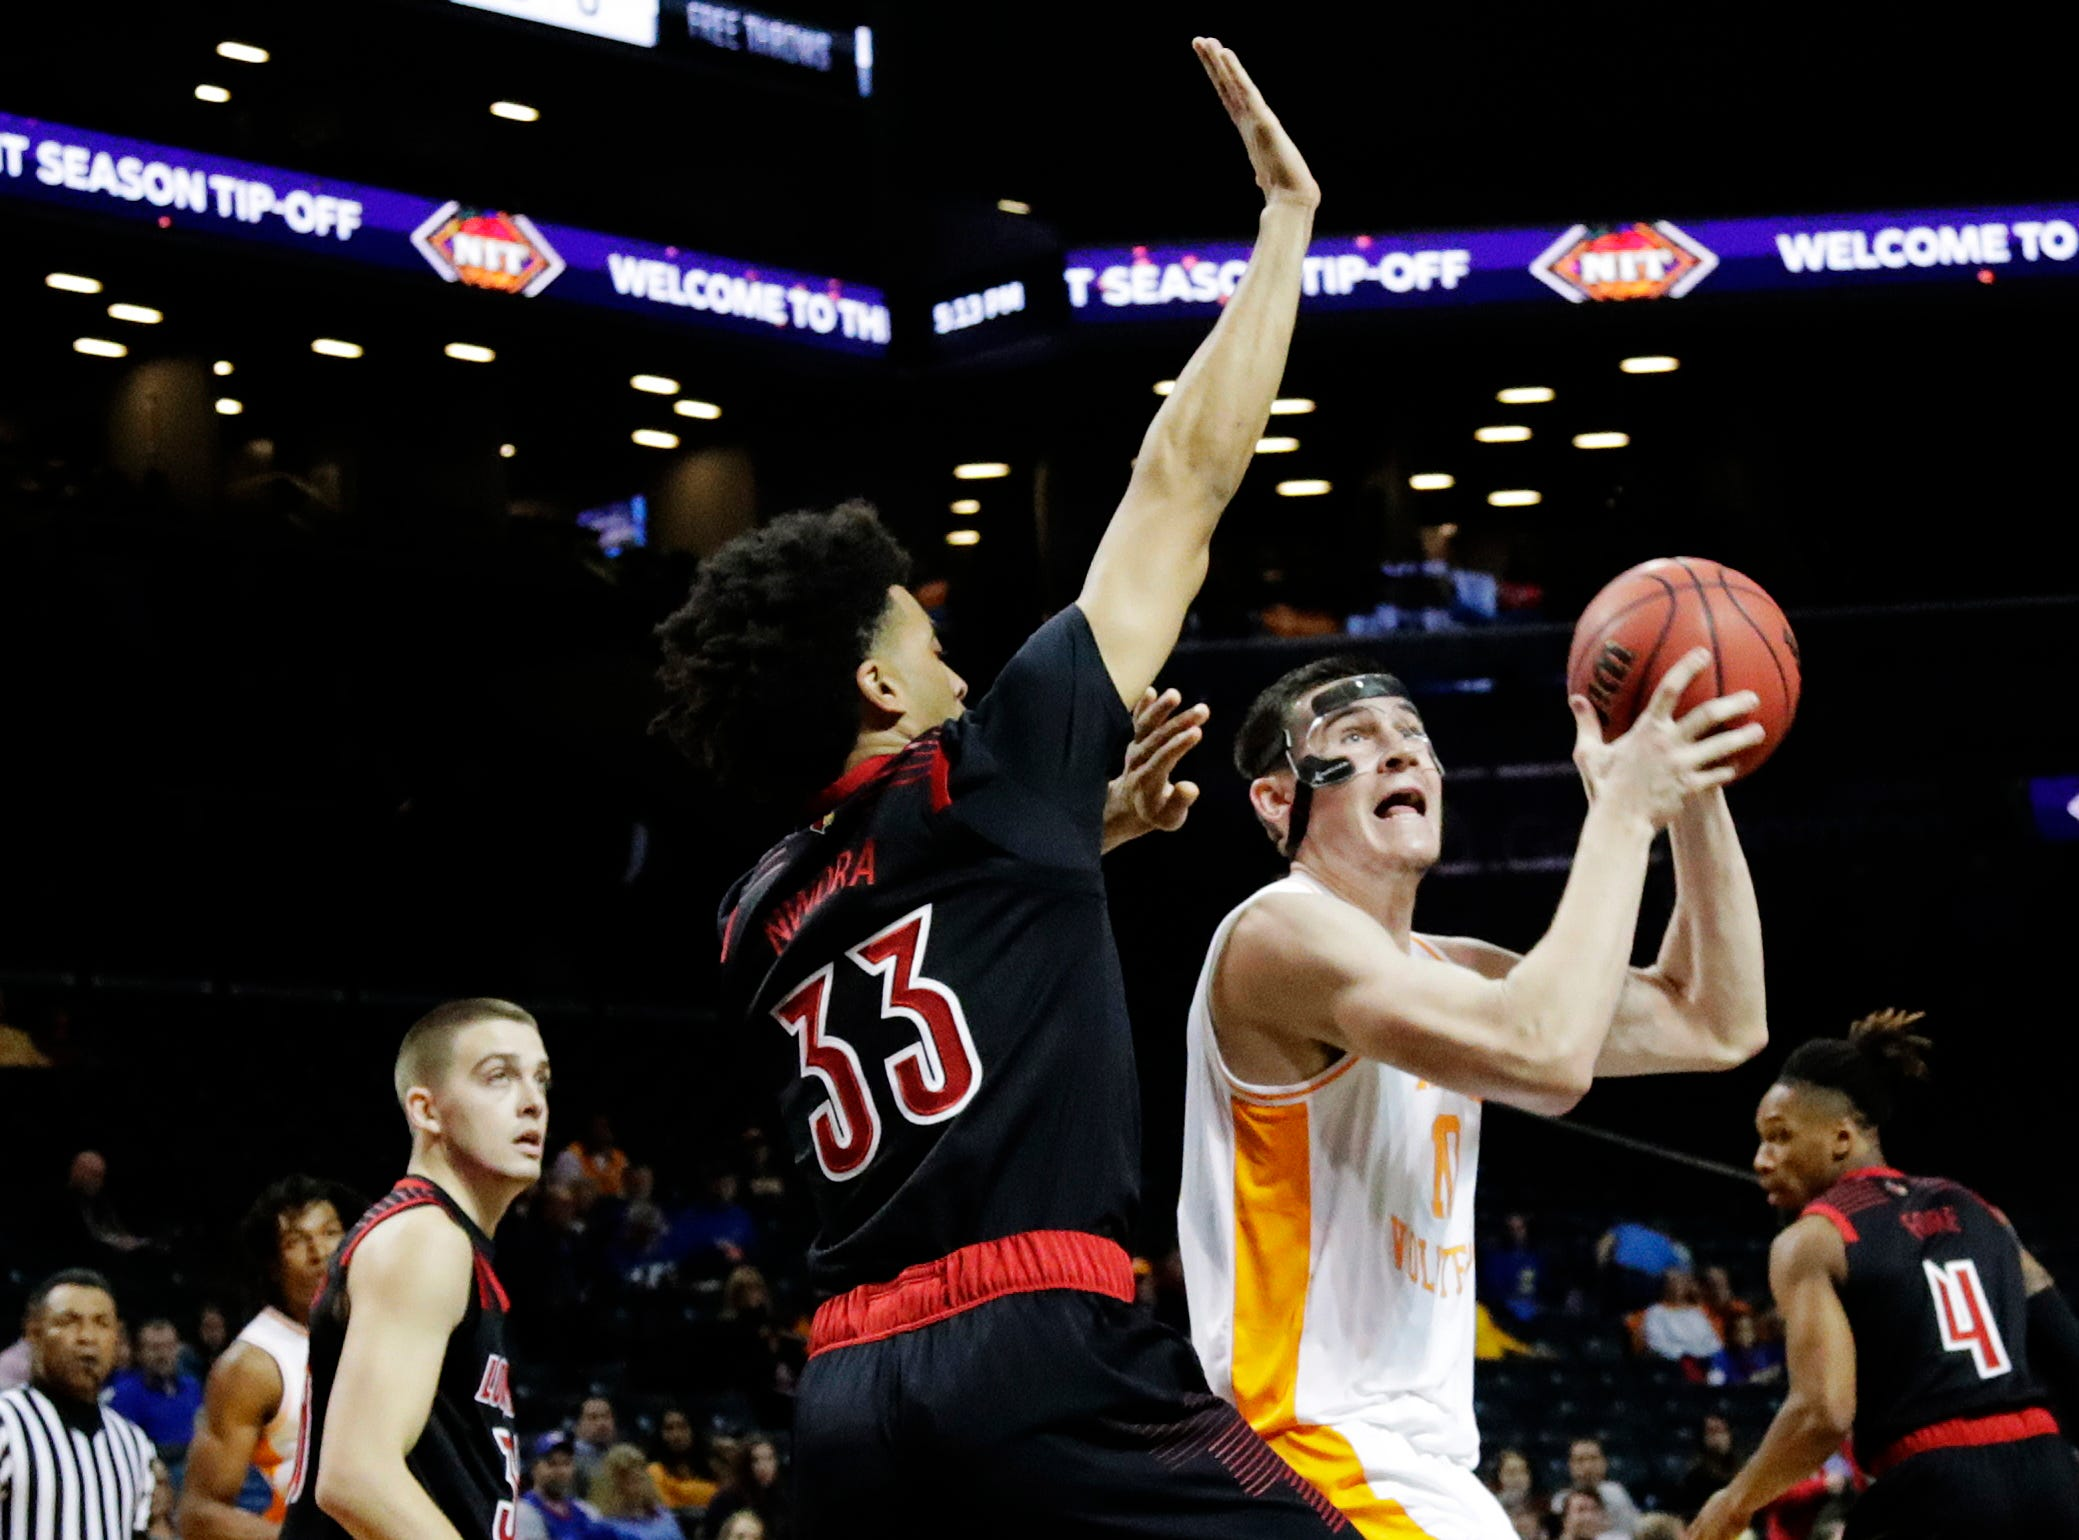 Louisville's Jordan Nwora (33) defends Tennessee's John Fulkerson (10) during the first half of an NCAA college basketball game in the NIT Season Tip-Off tournament Wednesday, Nov. 21, 2018, in New York. (AP Photo/Frank Franklin II)